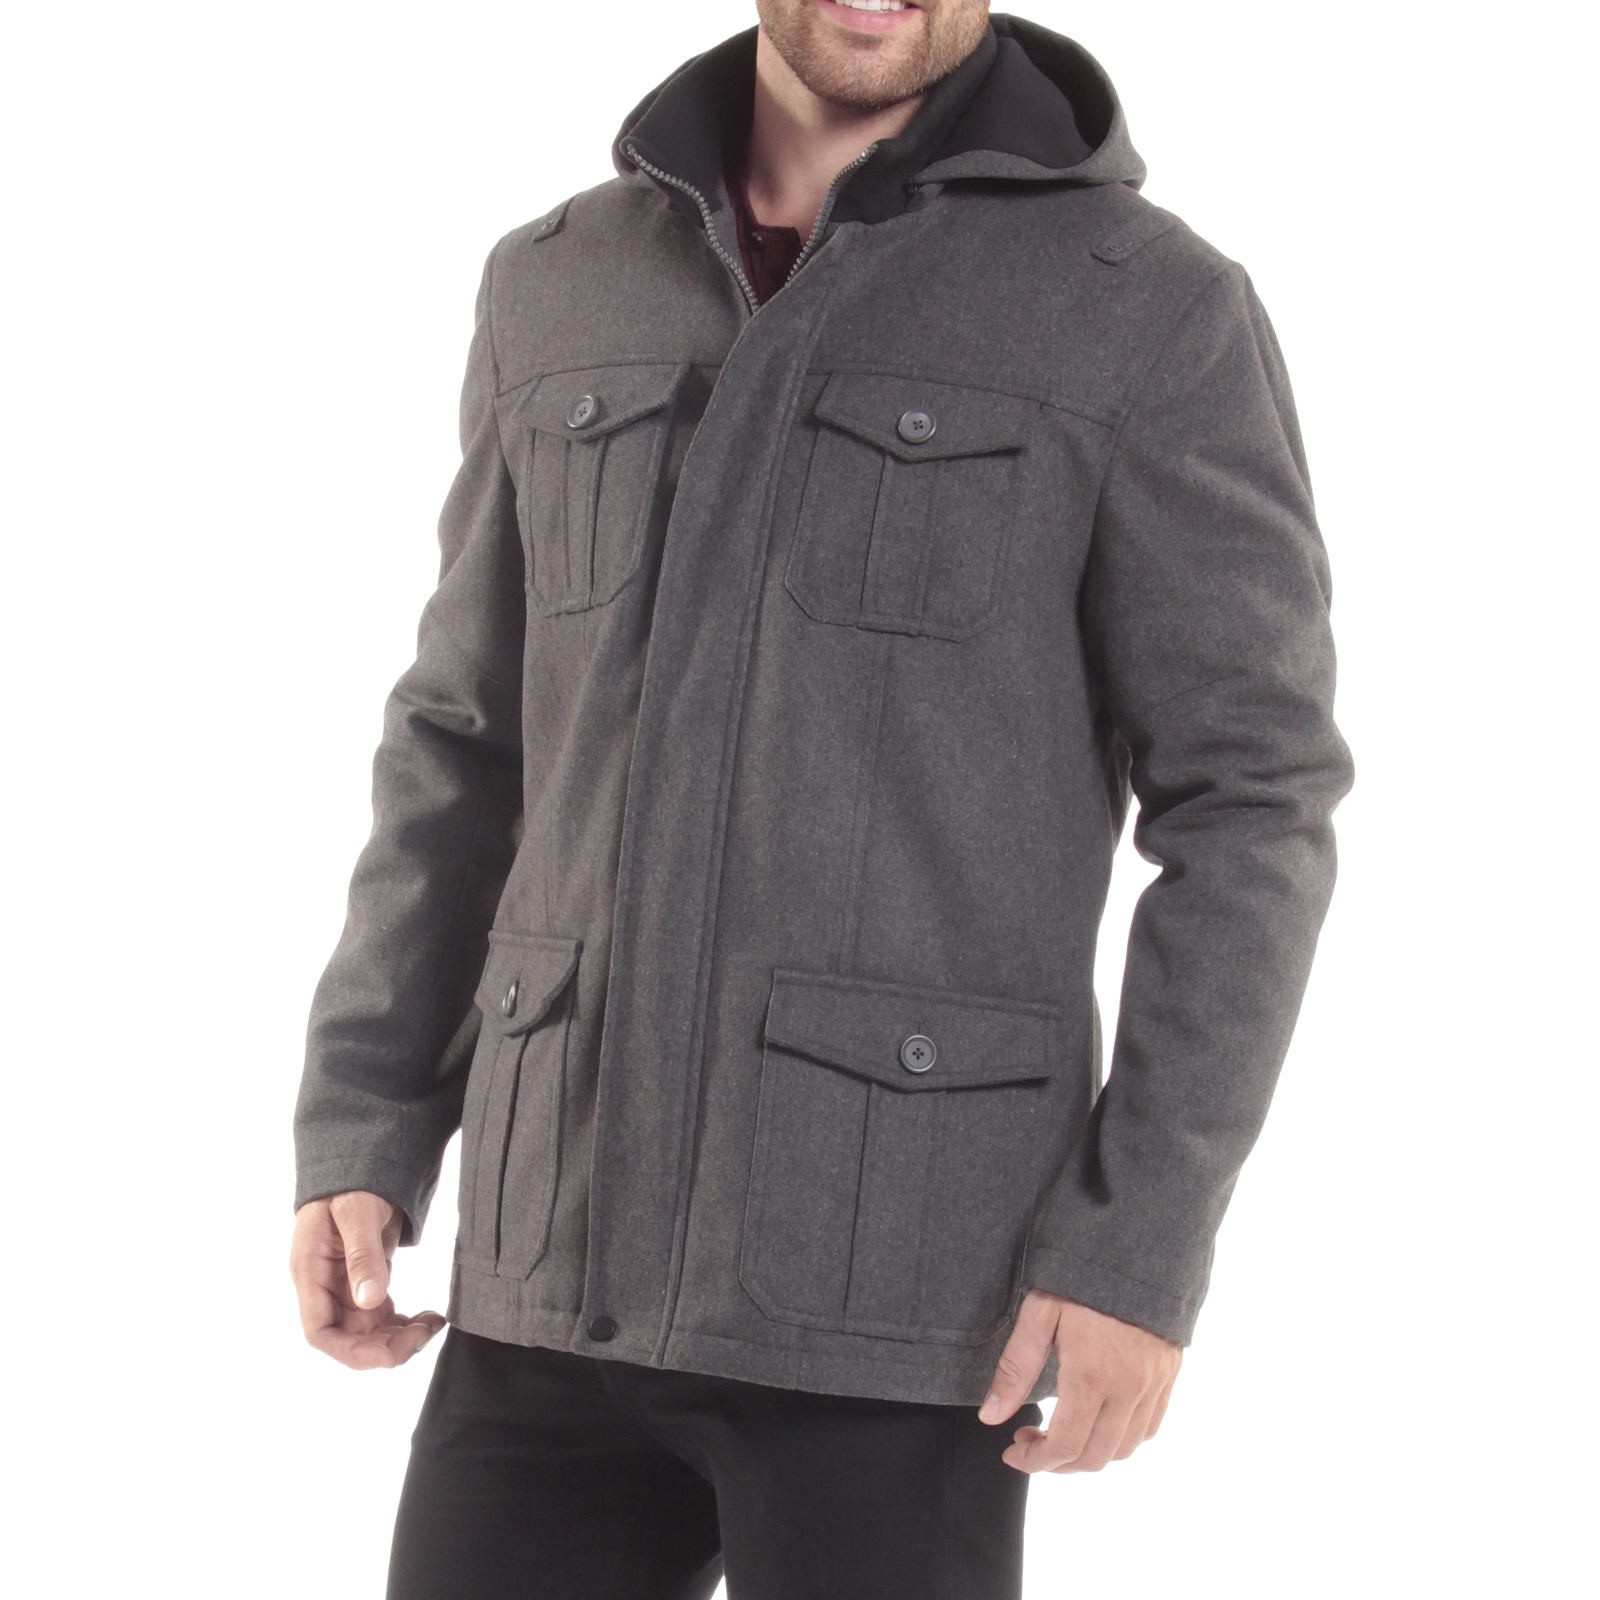 Alpine-Swiss-Noah-Mens-Wool-Coat-Parka-with-Removable-Hood-Jacket-Cargo-Pockets thumbnail 32